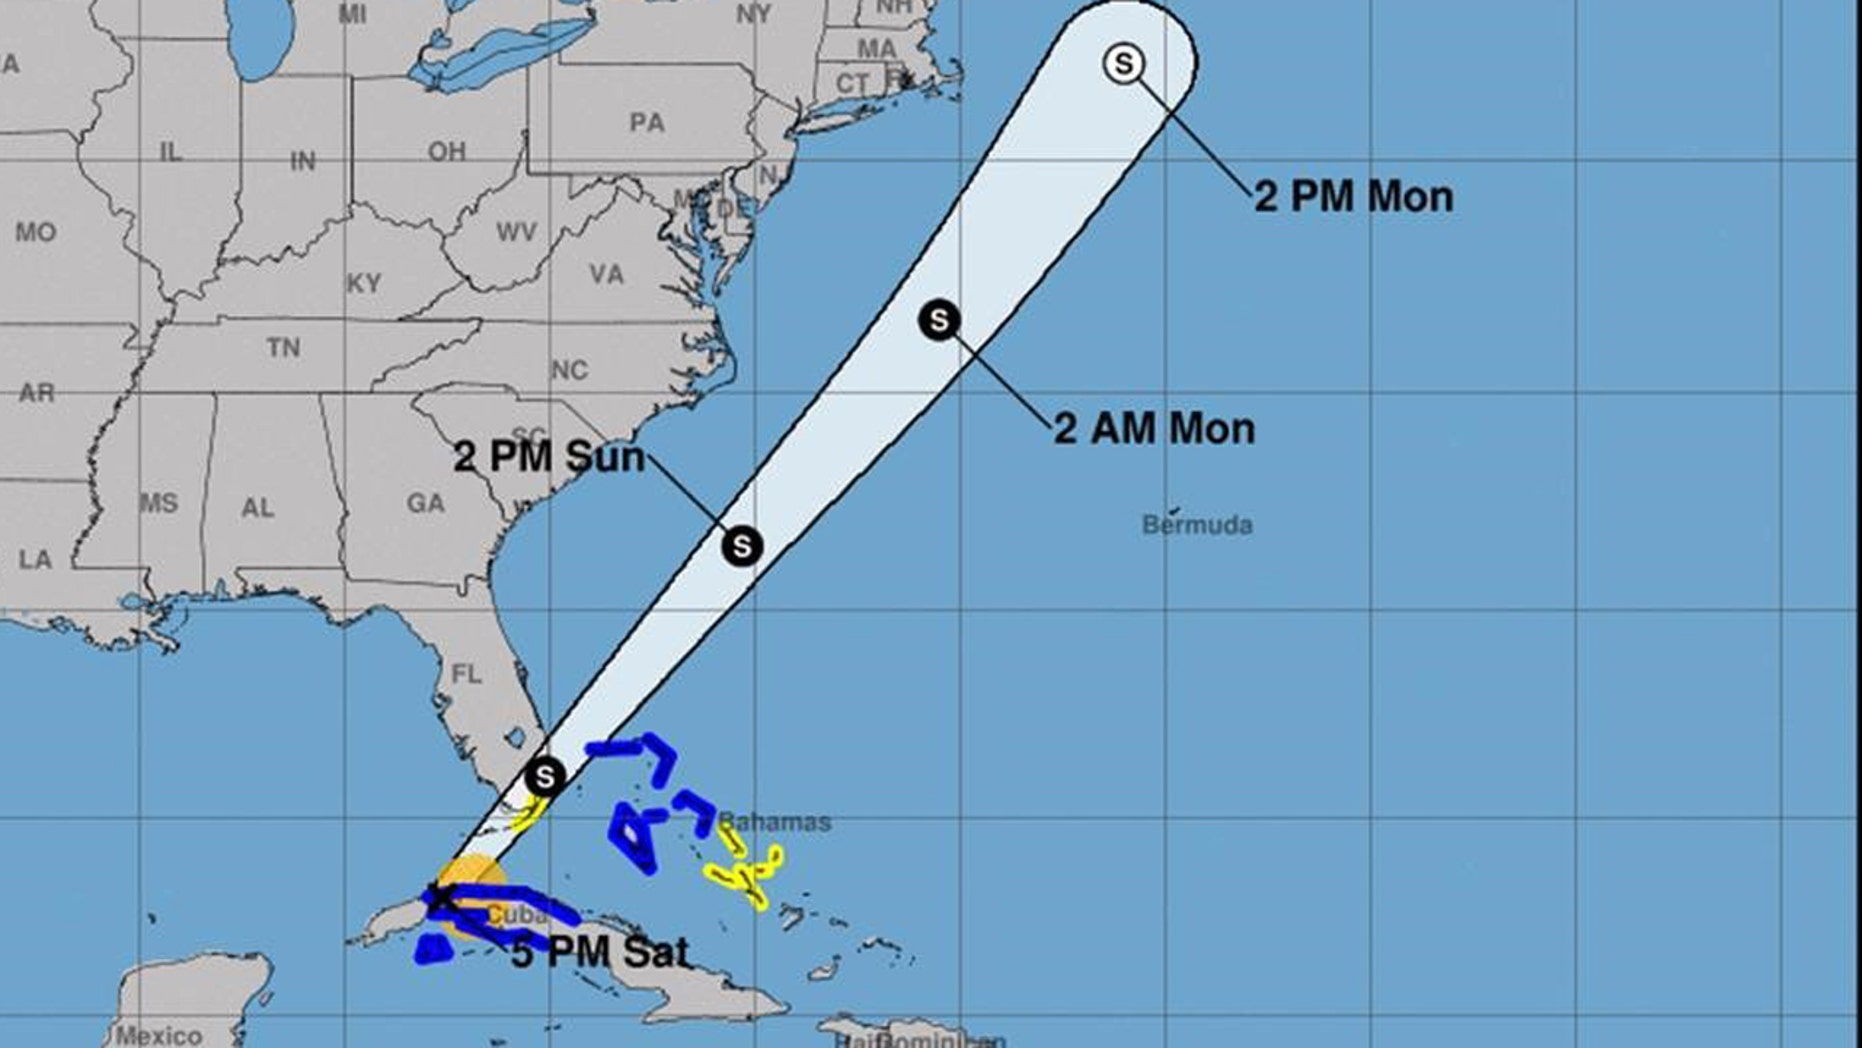 This map shows the track of Tropical Storm Philippe.